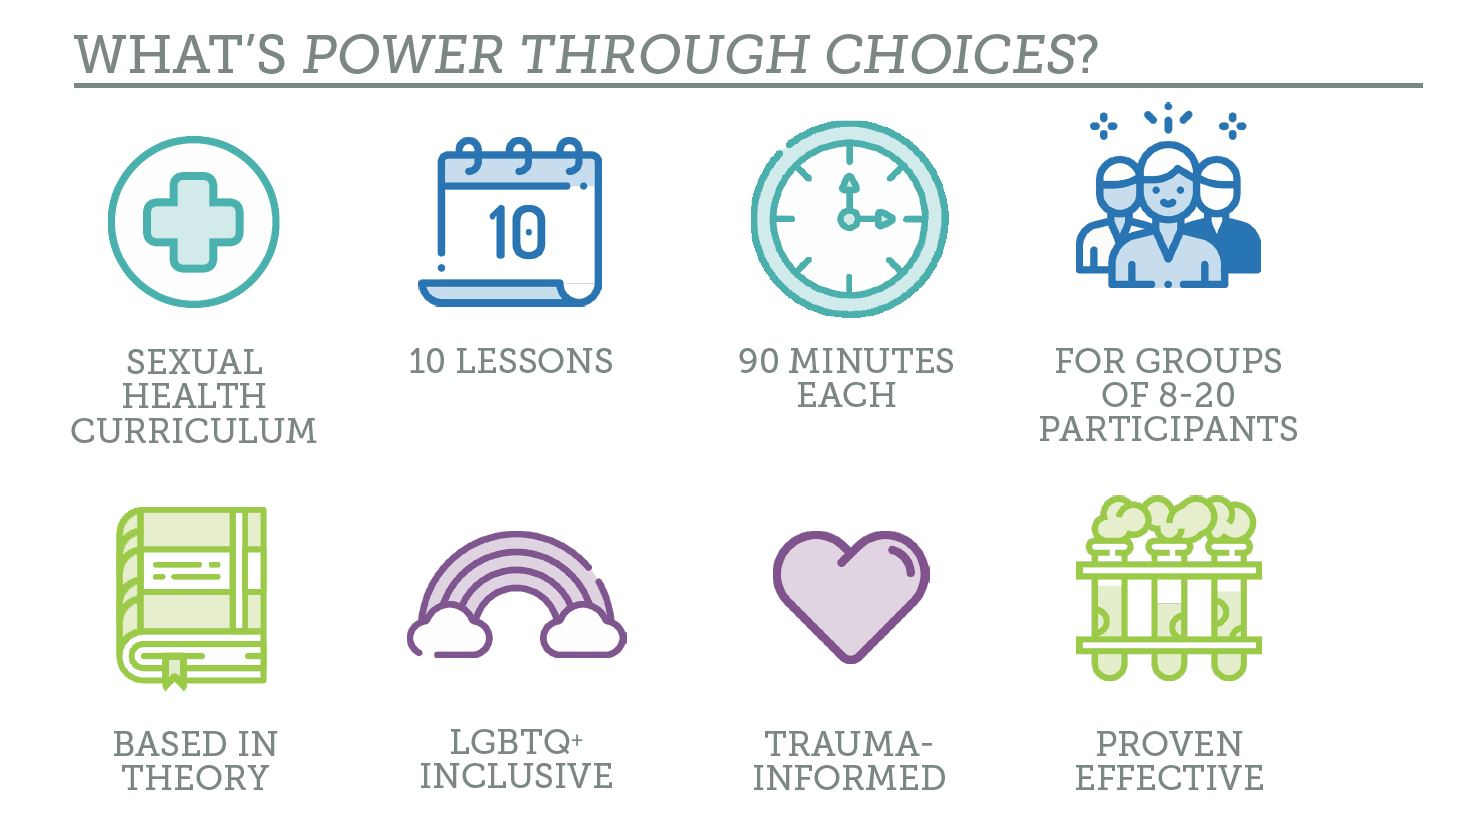 Image with icons identifying key elements of Power Through Choices: sexual health curriculum, 10 lessons, 90 minutes each, for groups of 8-20 participants, based in theory, LGBTQ+ inclusive, trauma-informed, proven effective